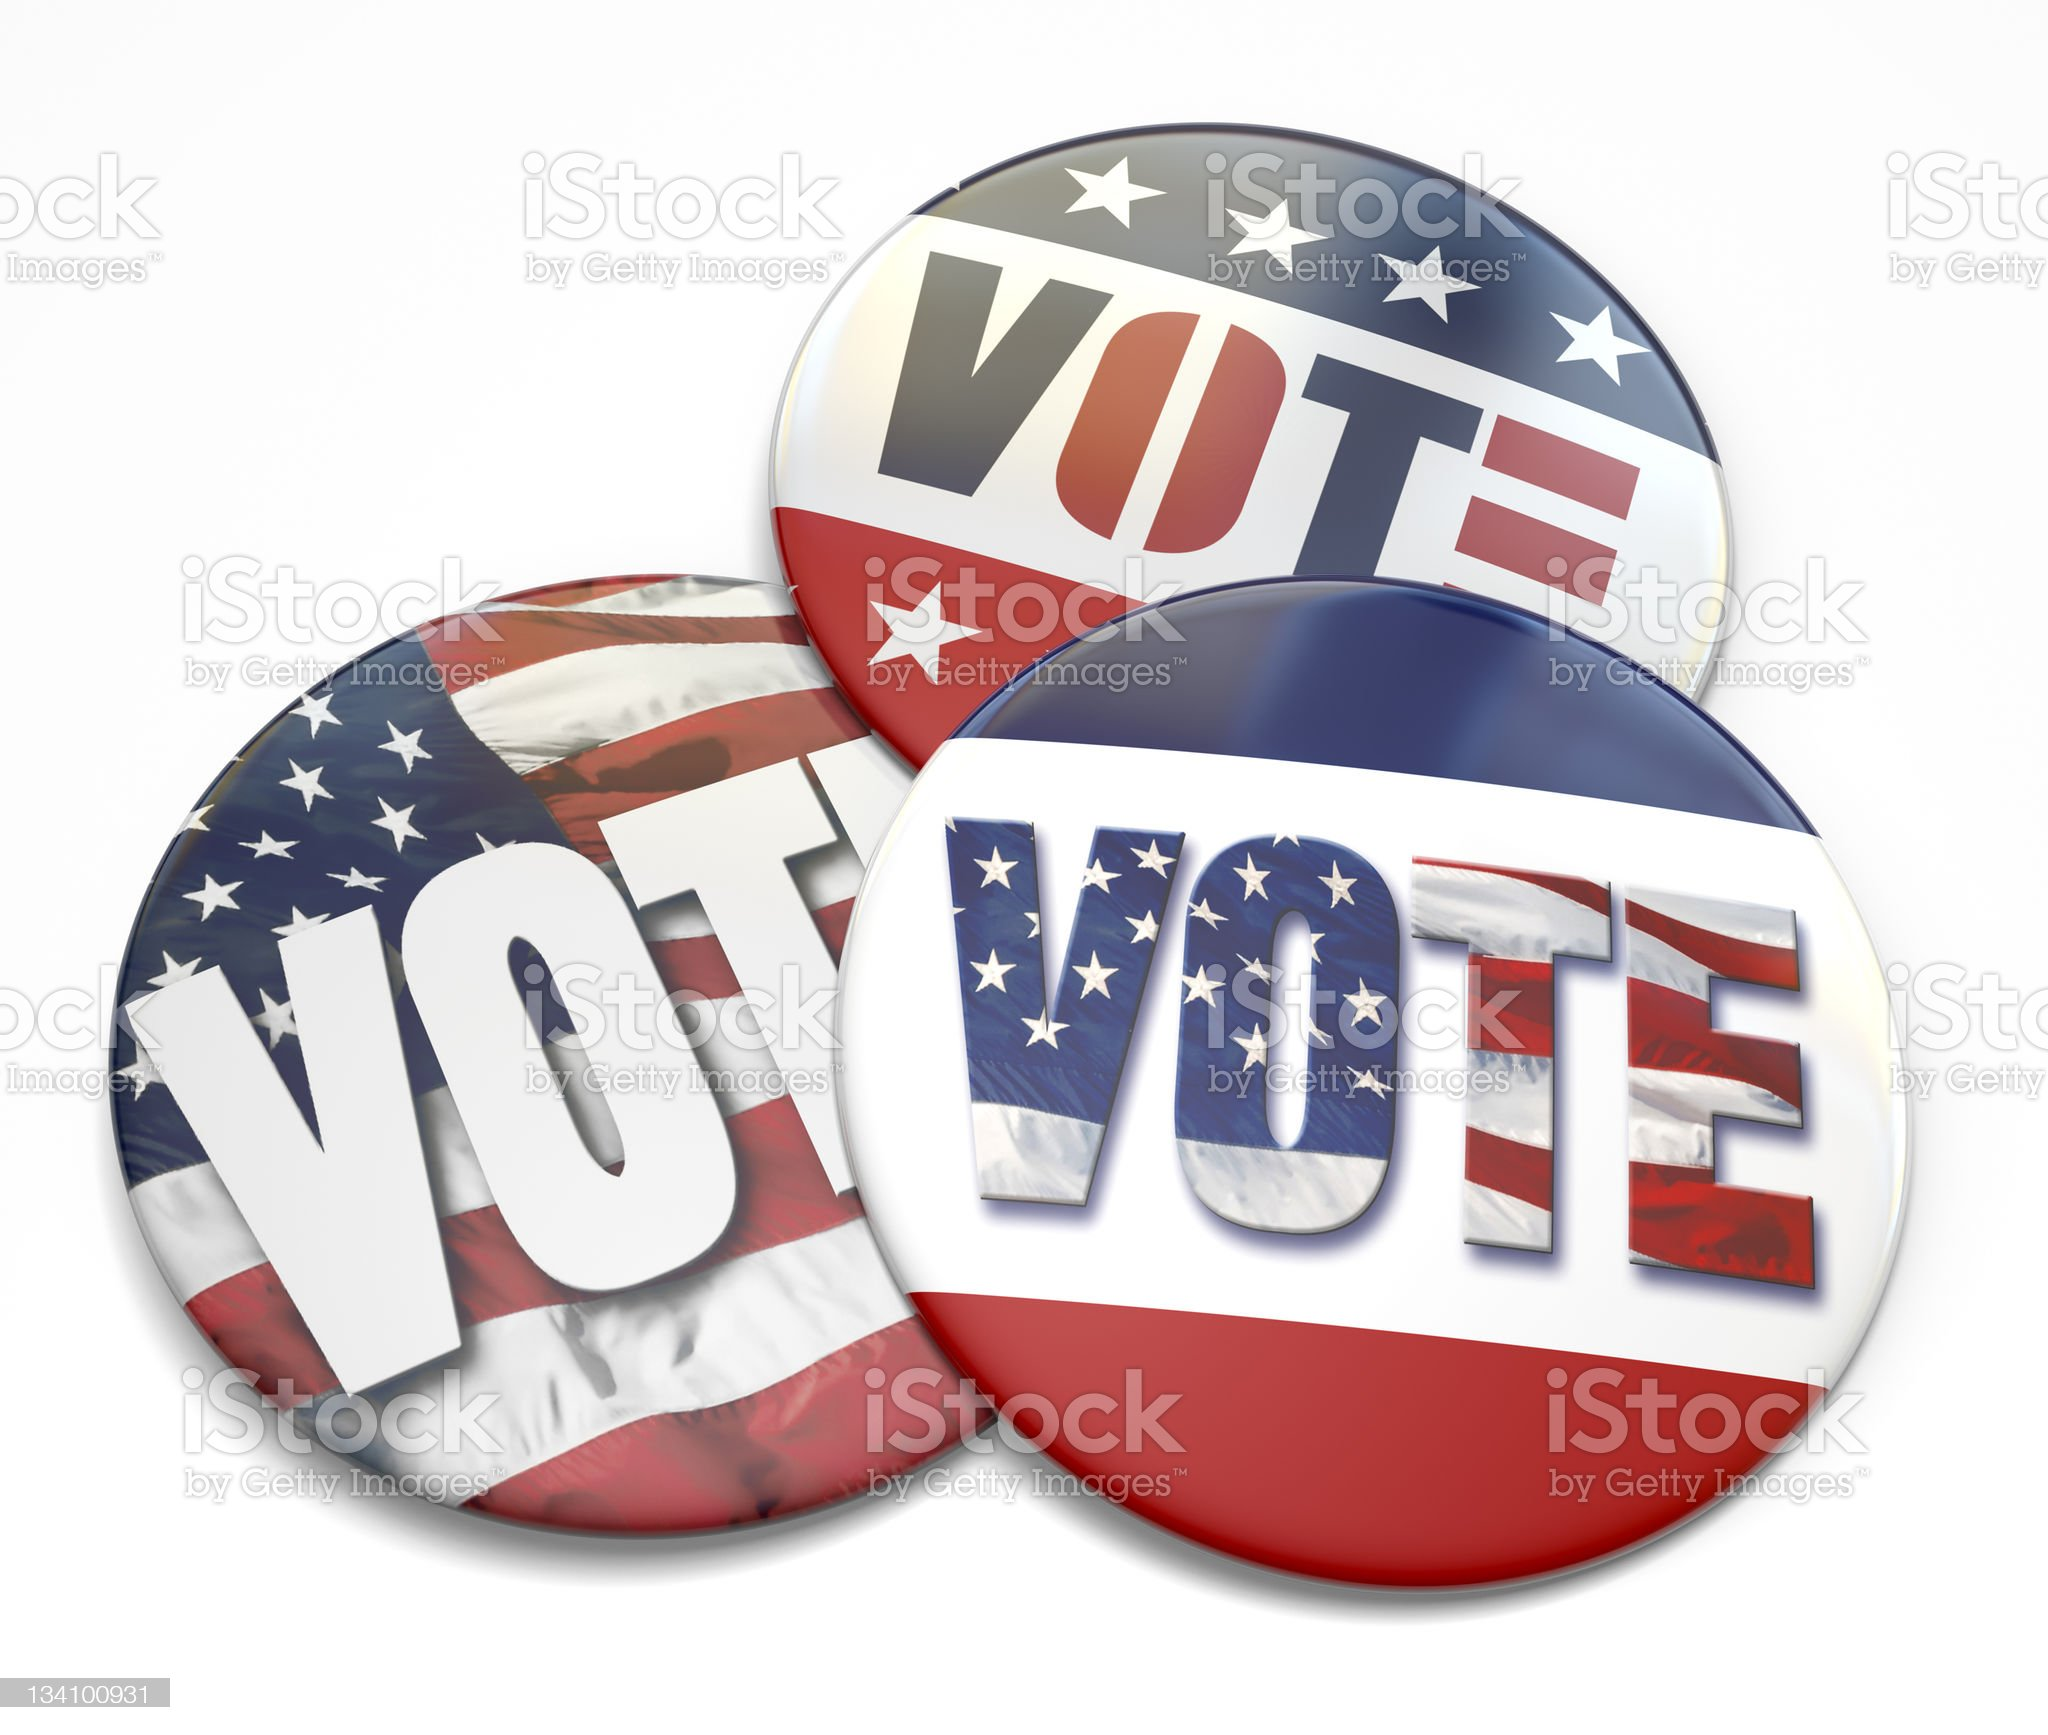 Vote Buttons royalty-free stock photo